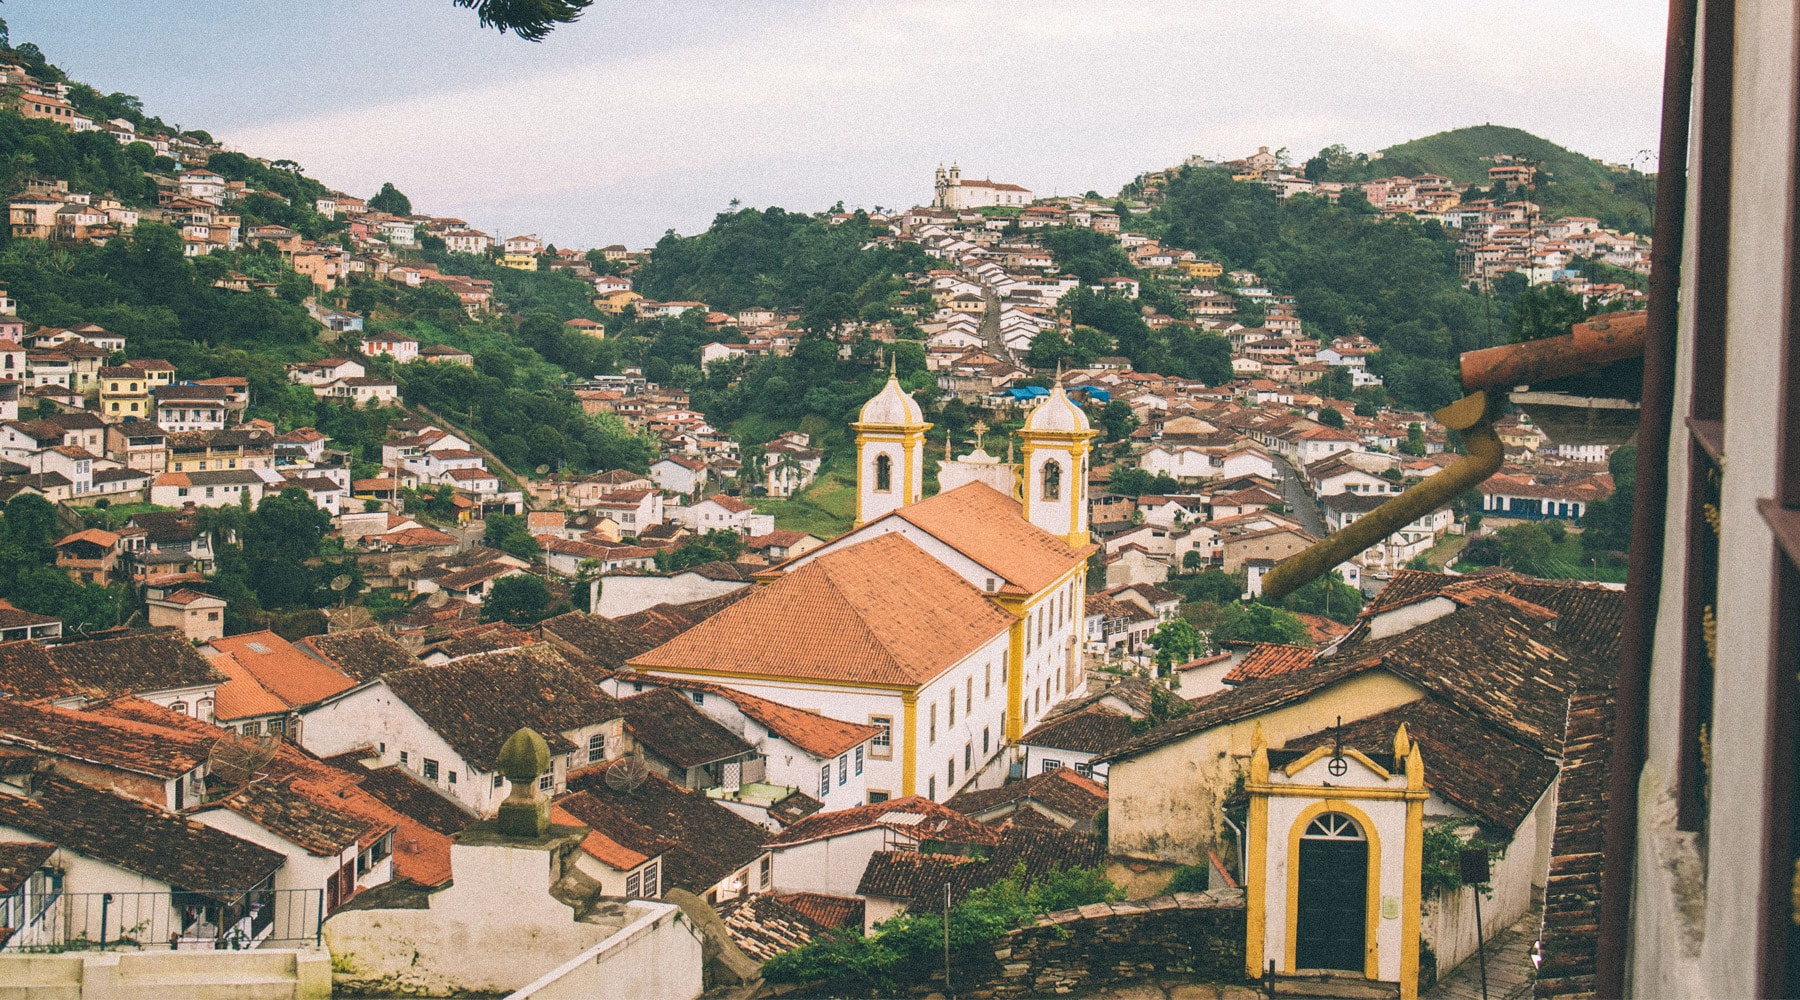 Ouro Preto - A Lovely Historic Town in Brazil 1